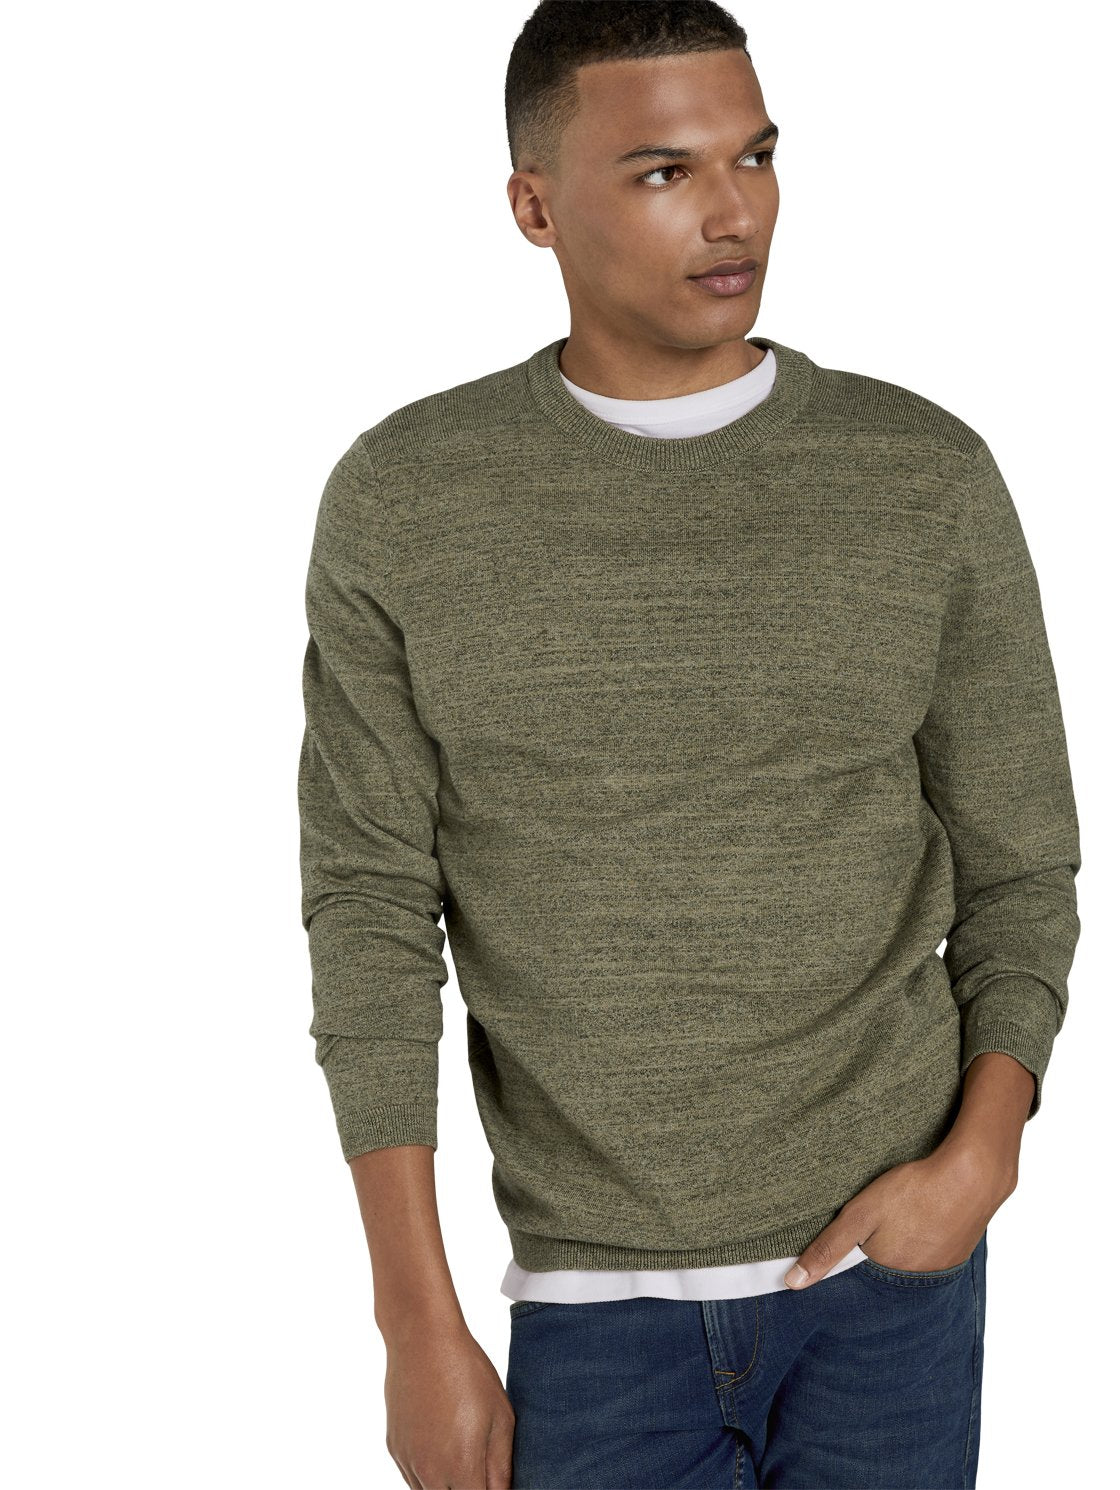 Tom Tailor green sweater 1020349